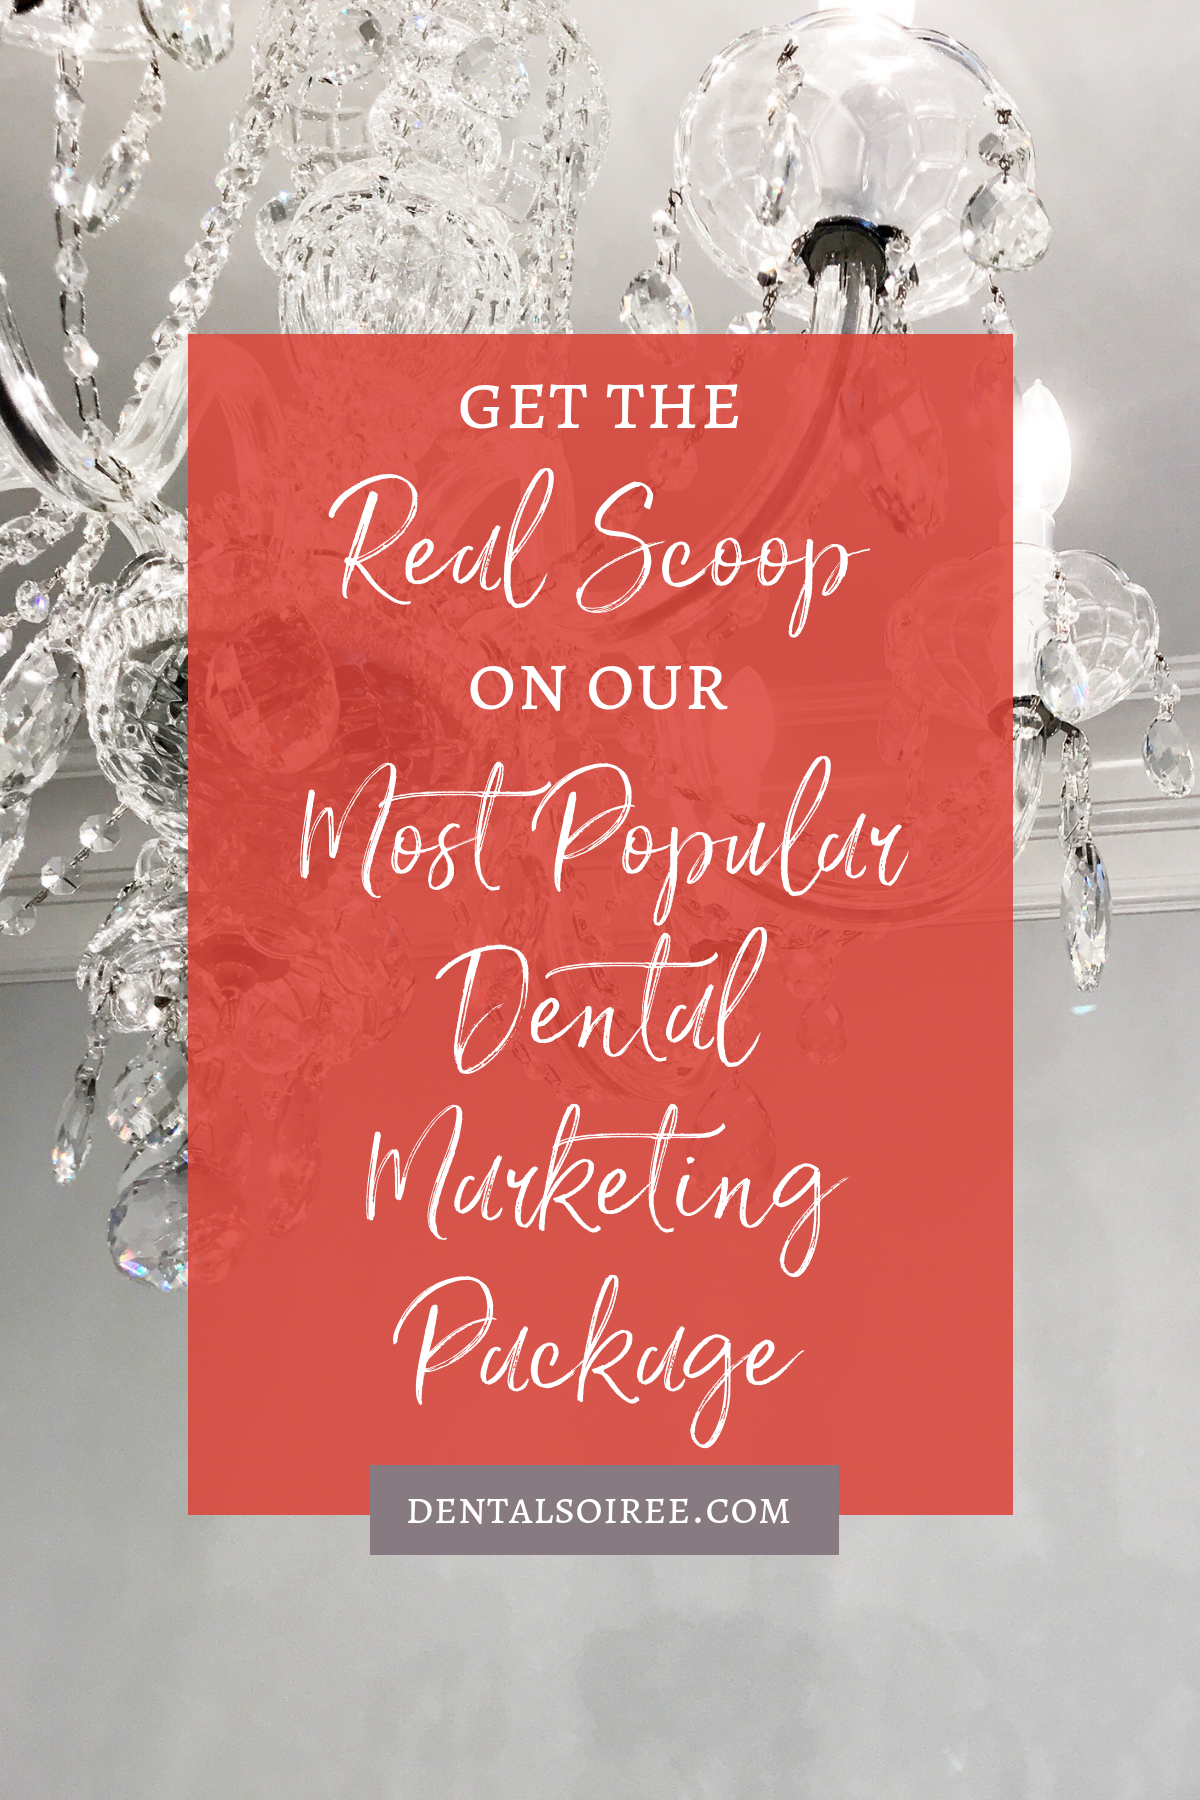 What People Are Saying About Our Most Popular Dental Marketing Package